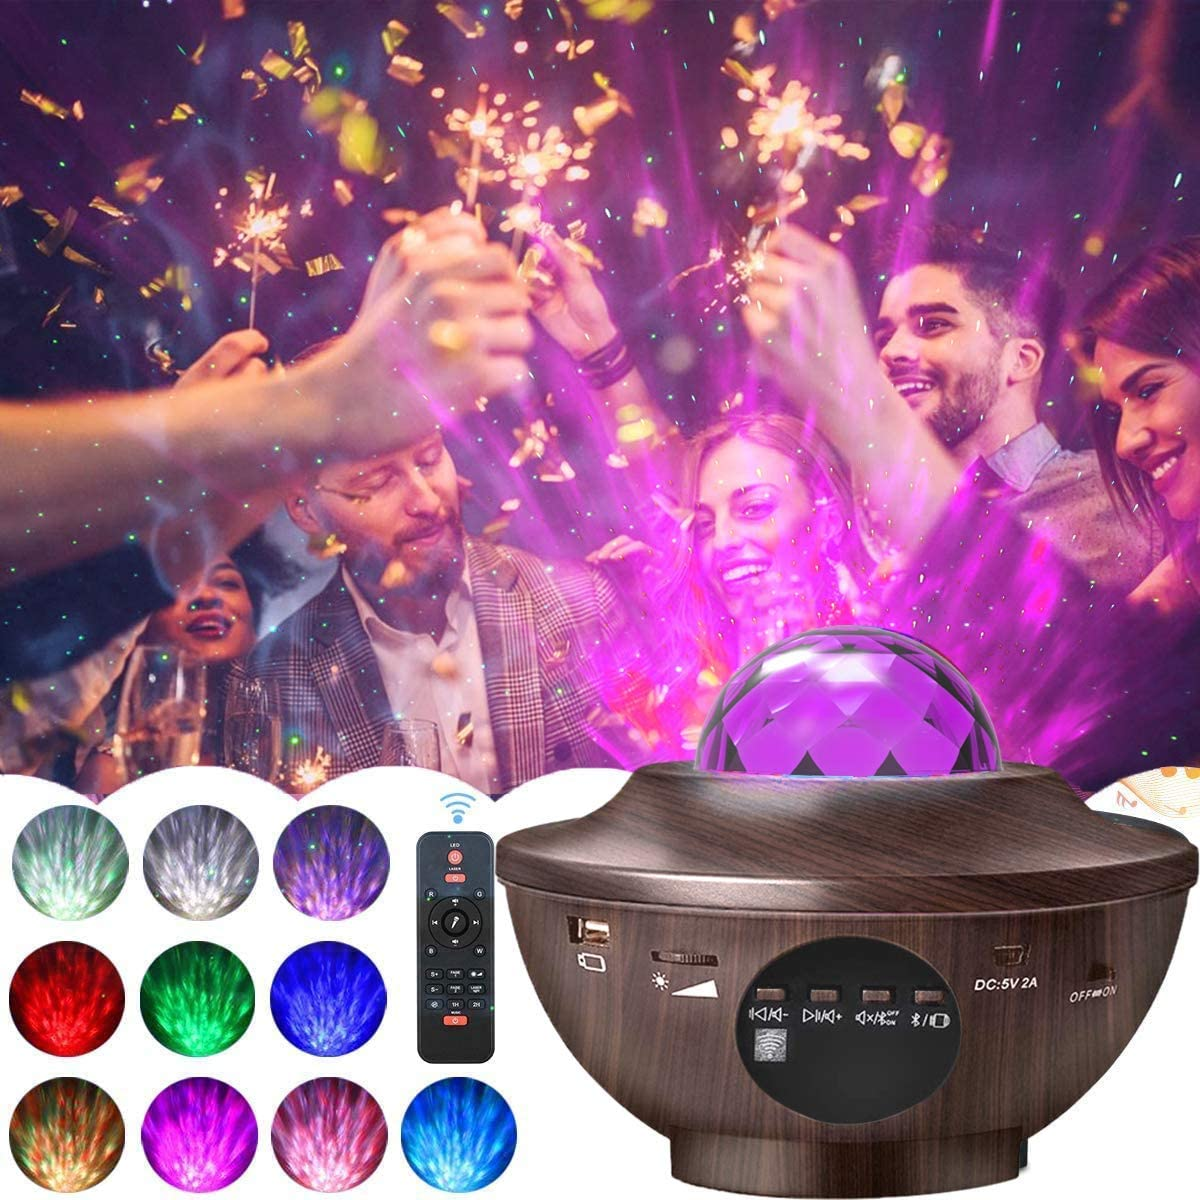 Amouhom Galaxy Projector Night Light - Bluetooth Music Stage Light with Remote Control Adjustable Brightness LED Ocean Wave Star Projector Ambiance Light Gifts for Ceiling/Bedroom/Party/Birthday